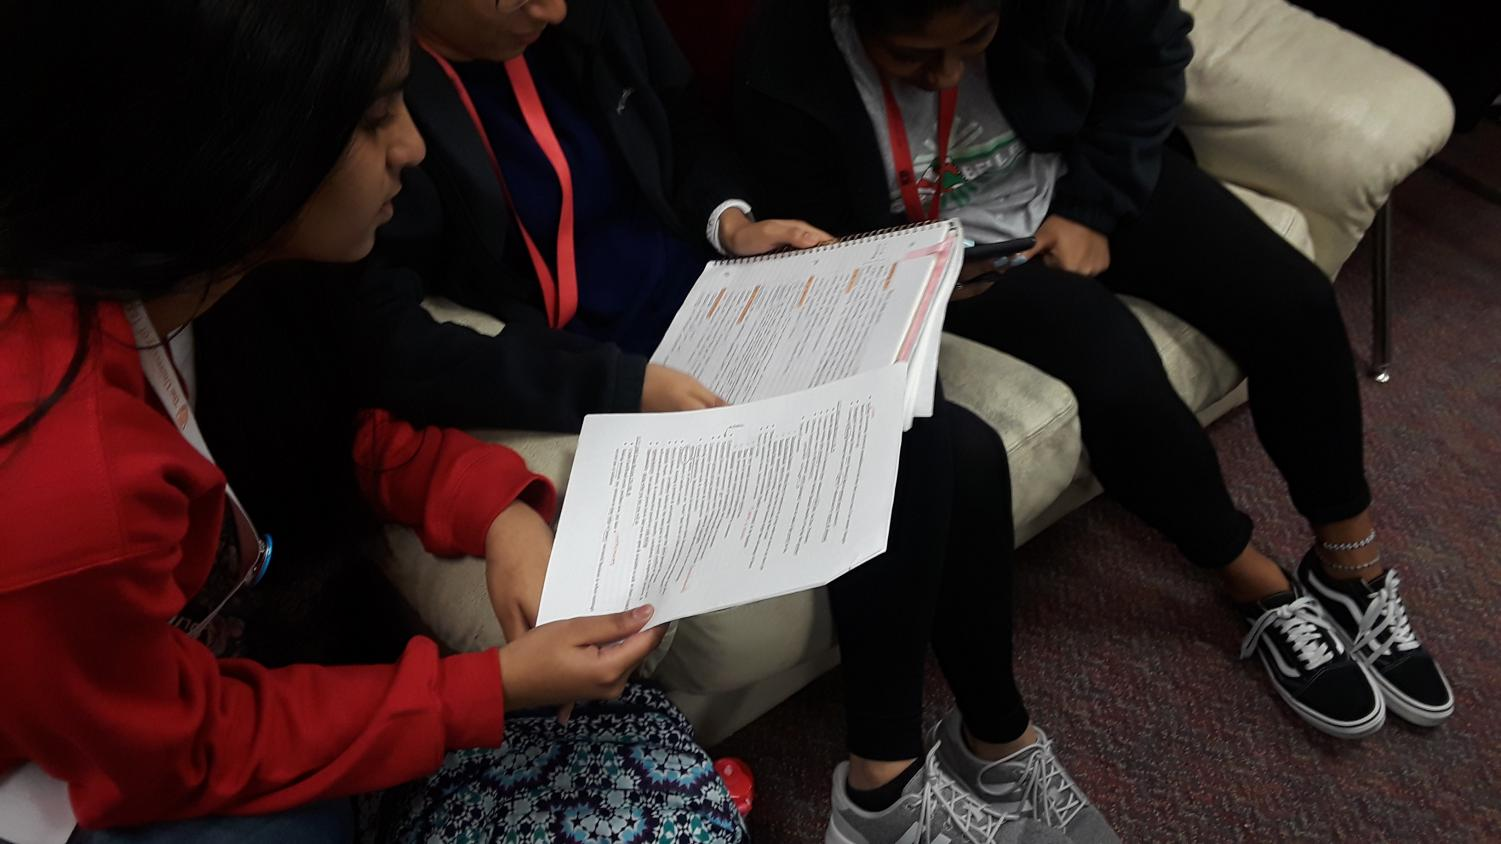 Studying for their DECA District CDC test, seniors Grishma Geedipally, Maahi Patel and Rishika Macha look over their notes. The test being administered is used to determine whether or not competitors advance to the state competition.